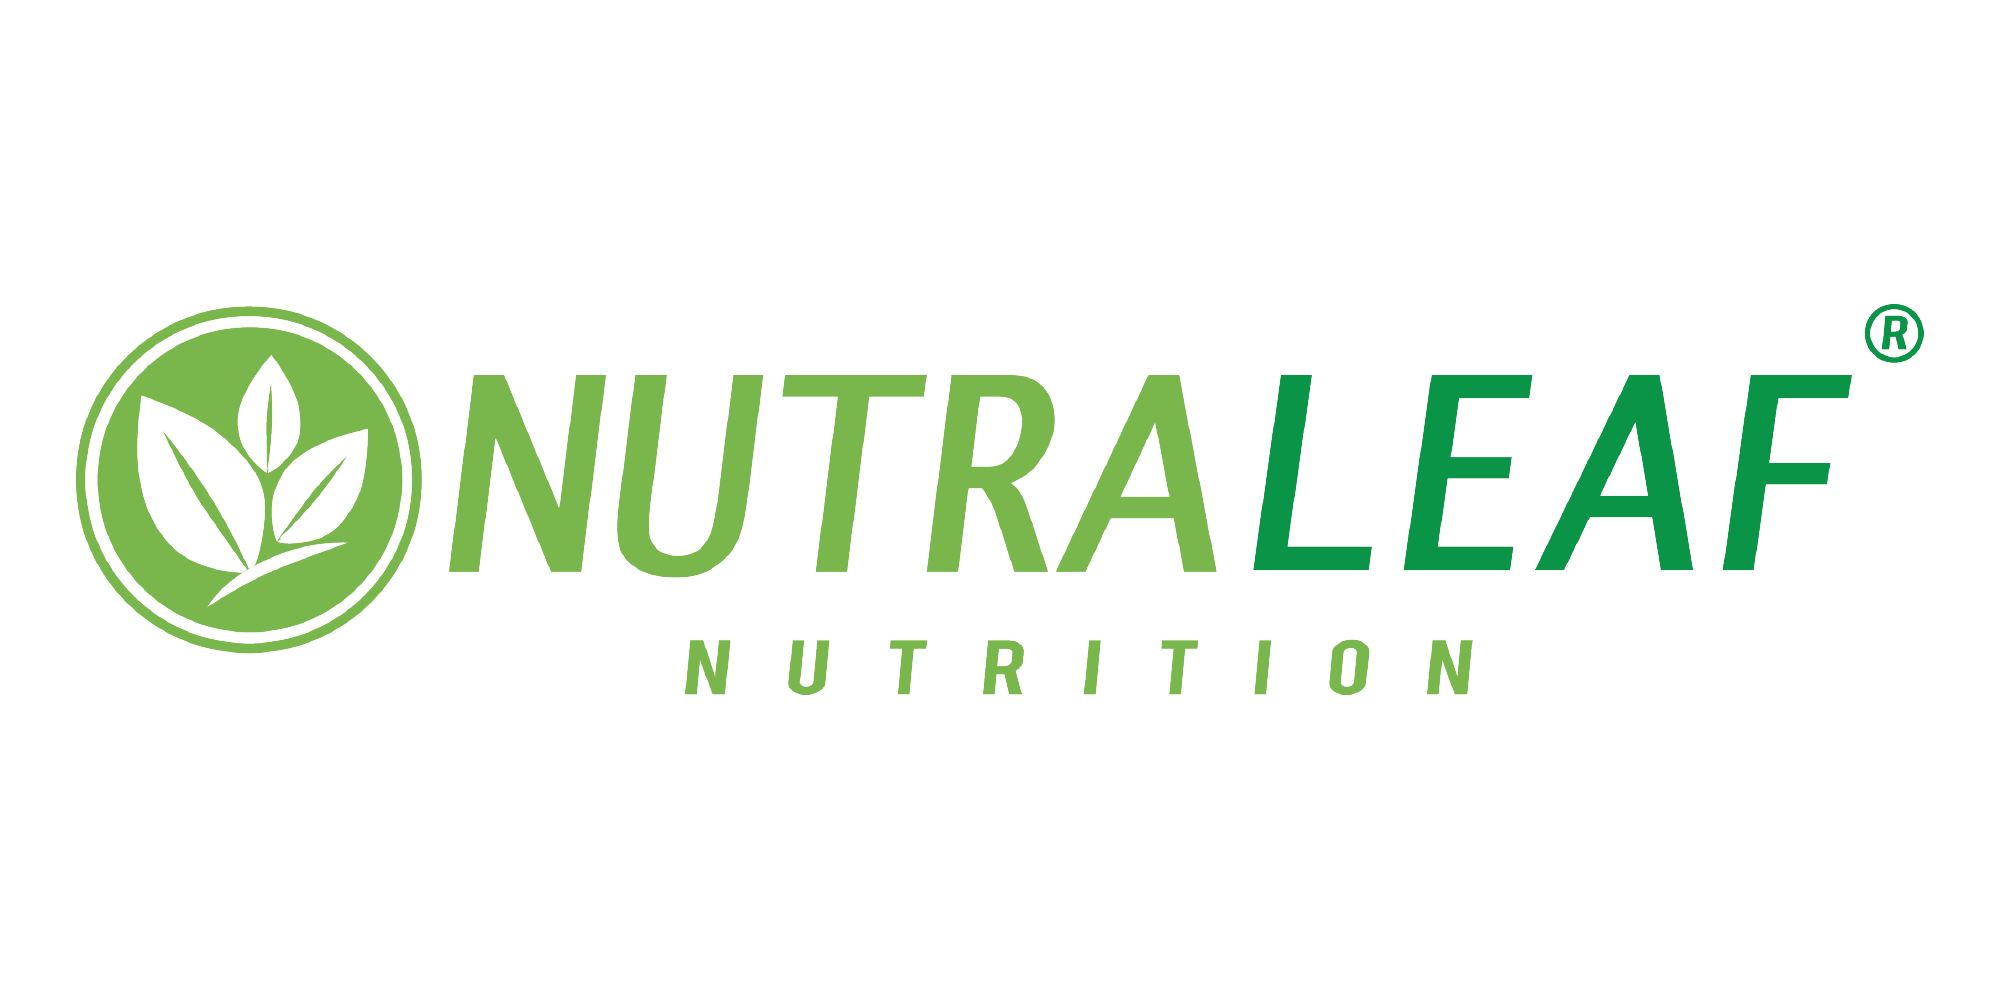 Nutraleaf Coupons and Promo Code